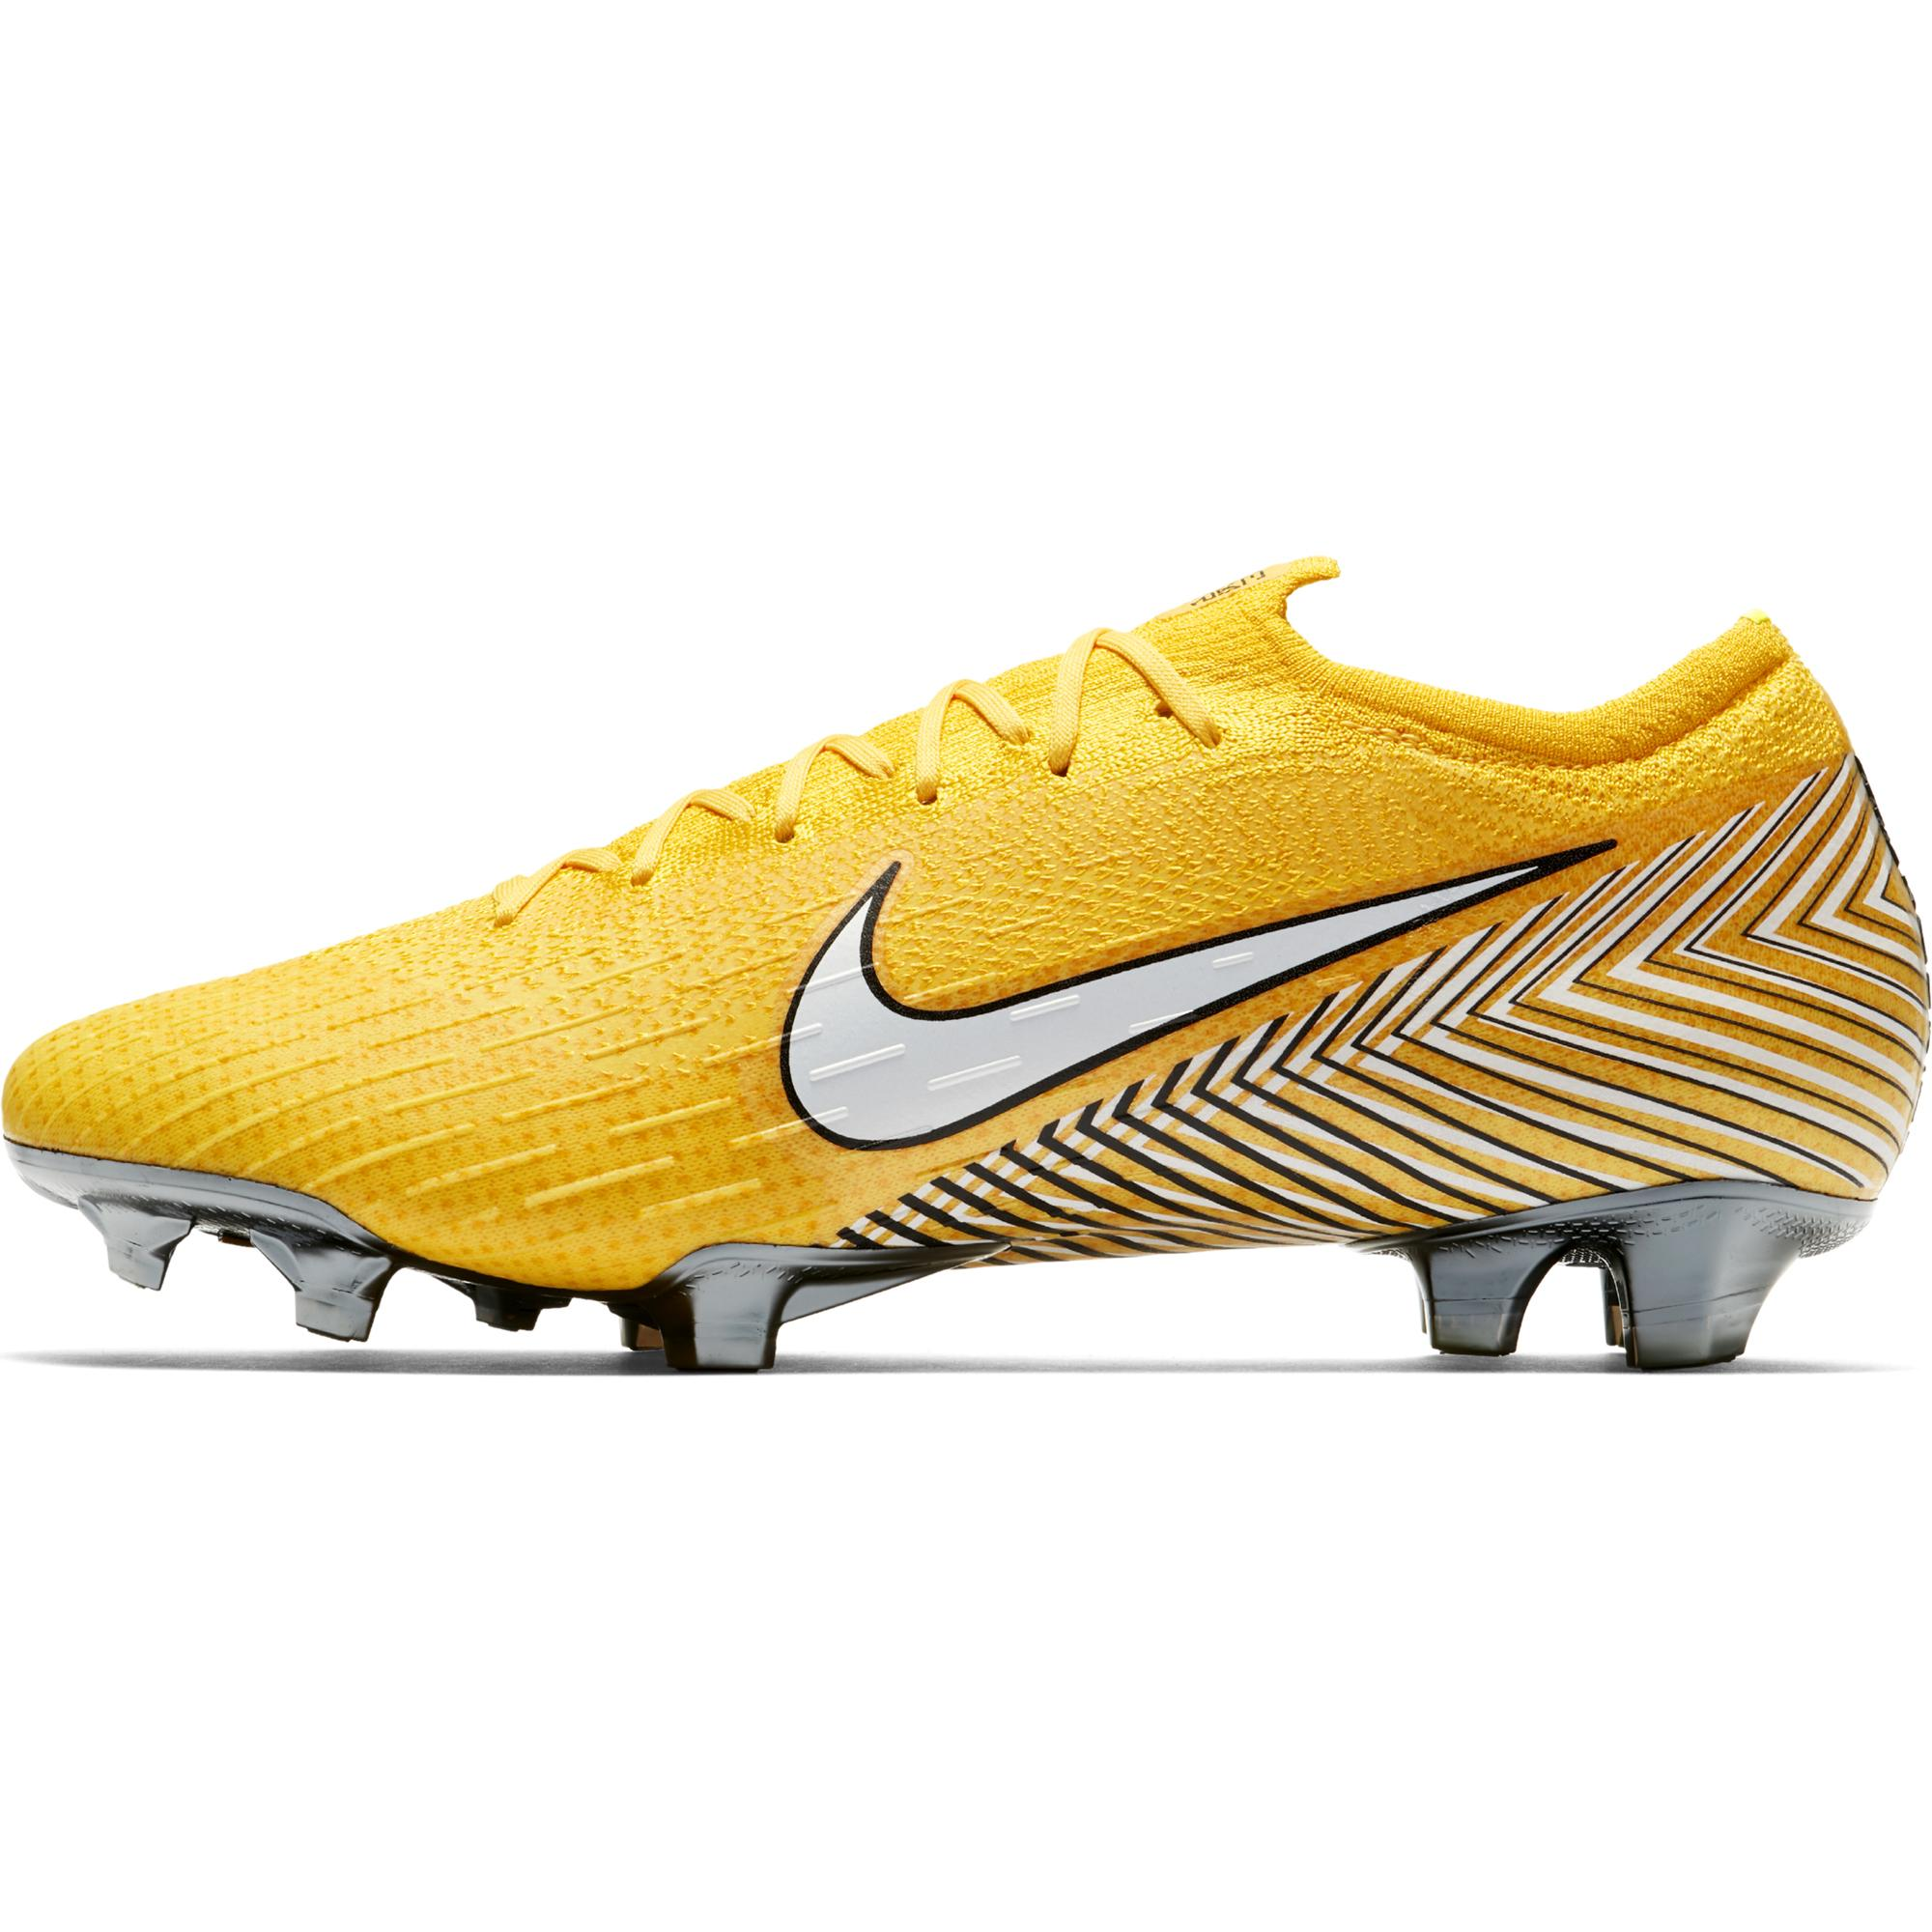 94c8cacdd Nike Football Shoes Vapor 12 Elite Fg Neymar Jr Amarillo/white-dynamic  Yellow-black - Tifoshop.com